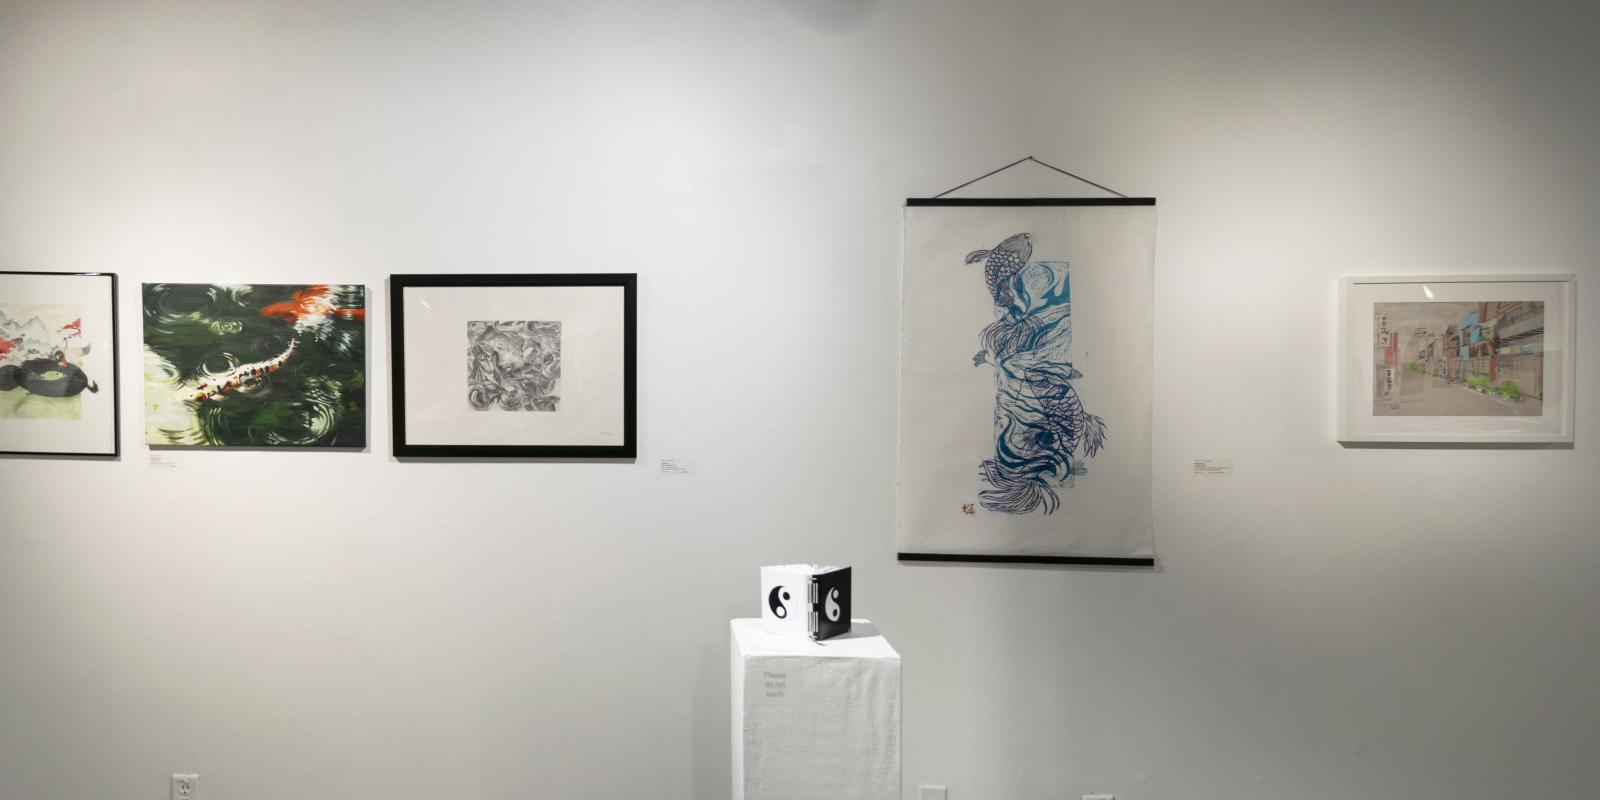 2D3D artwork at back of gallery, Exhibition: PolyKroma 2019, Apr.27, 2019 to May 19, 2019, Co-curated by Michele Cairella Fillmore & Sooyun Im, W. Keith & Janet Kellogg Art Gallery, Cal Poly Pomona.